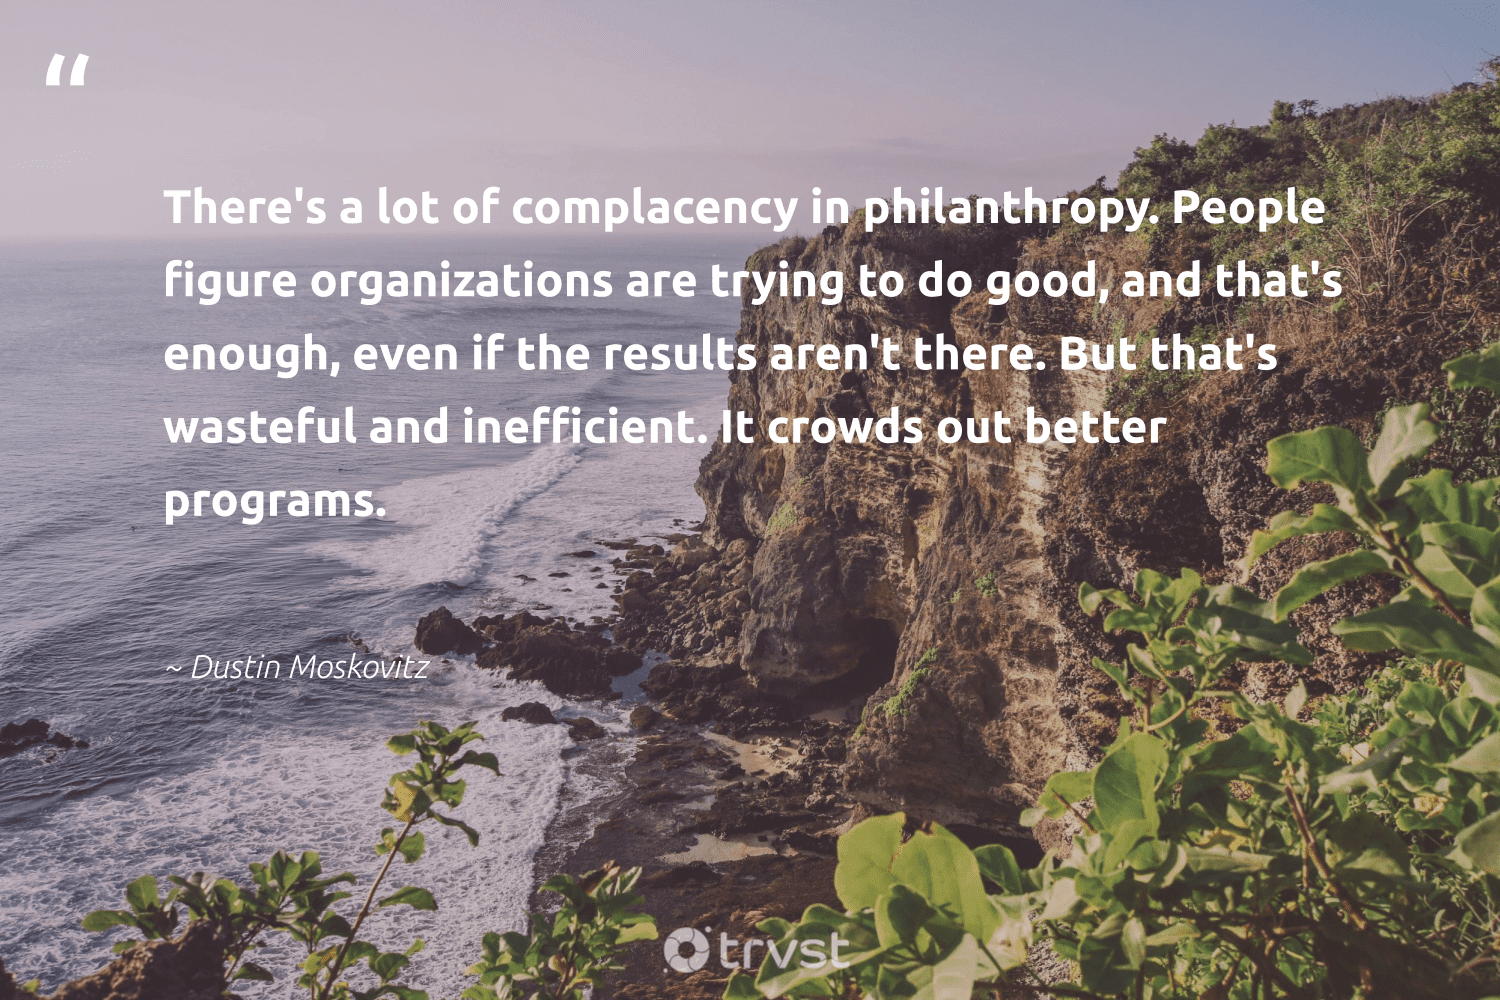 """""""There's a lot of complacency in philanthropy. People figure organizations are trying to do good, and that's enough, even if the results aren't there. But that's wasteful and inefficient. It crowds out better programs.""""  - Dustin Moskovitz #trvst #quotes #philanthropy #dogood #results #philanthropic #changemakers #giveforthefuture #planetearthfirst #togetherwecan #itscooltobekind #beinspired"""